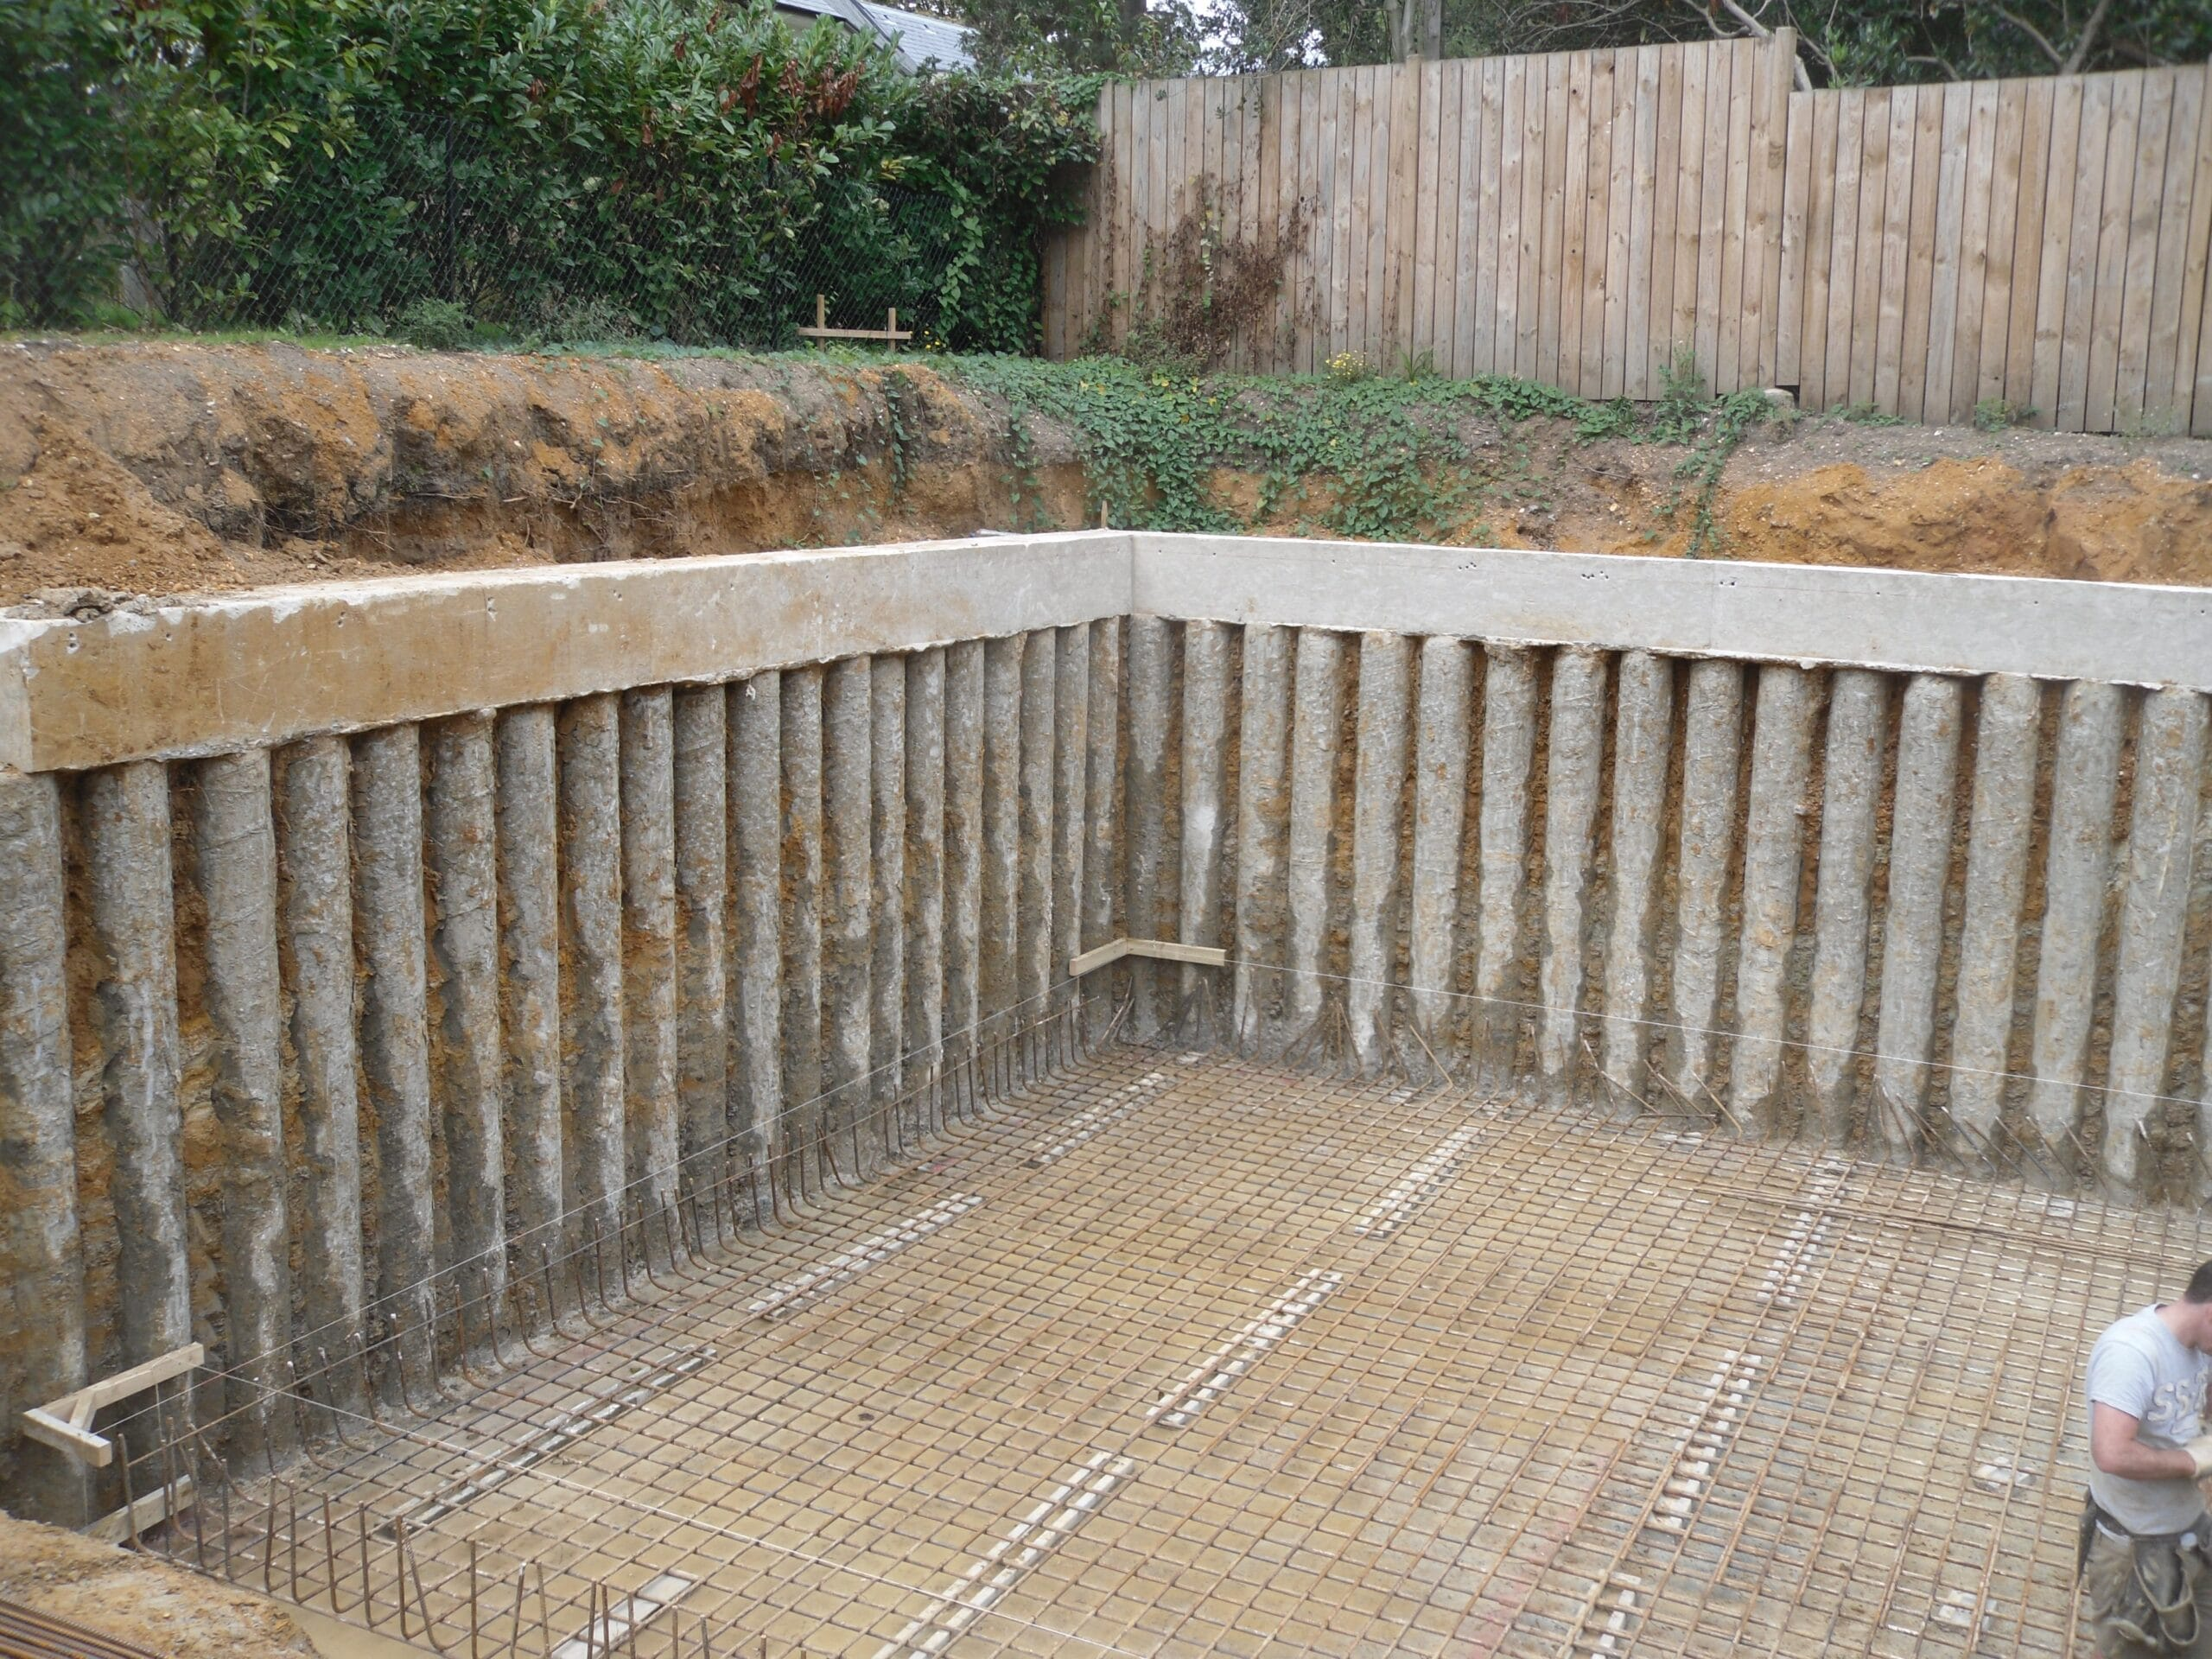 Contiguous Piling | What Is It Used For? | Underpin and Makegood